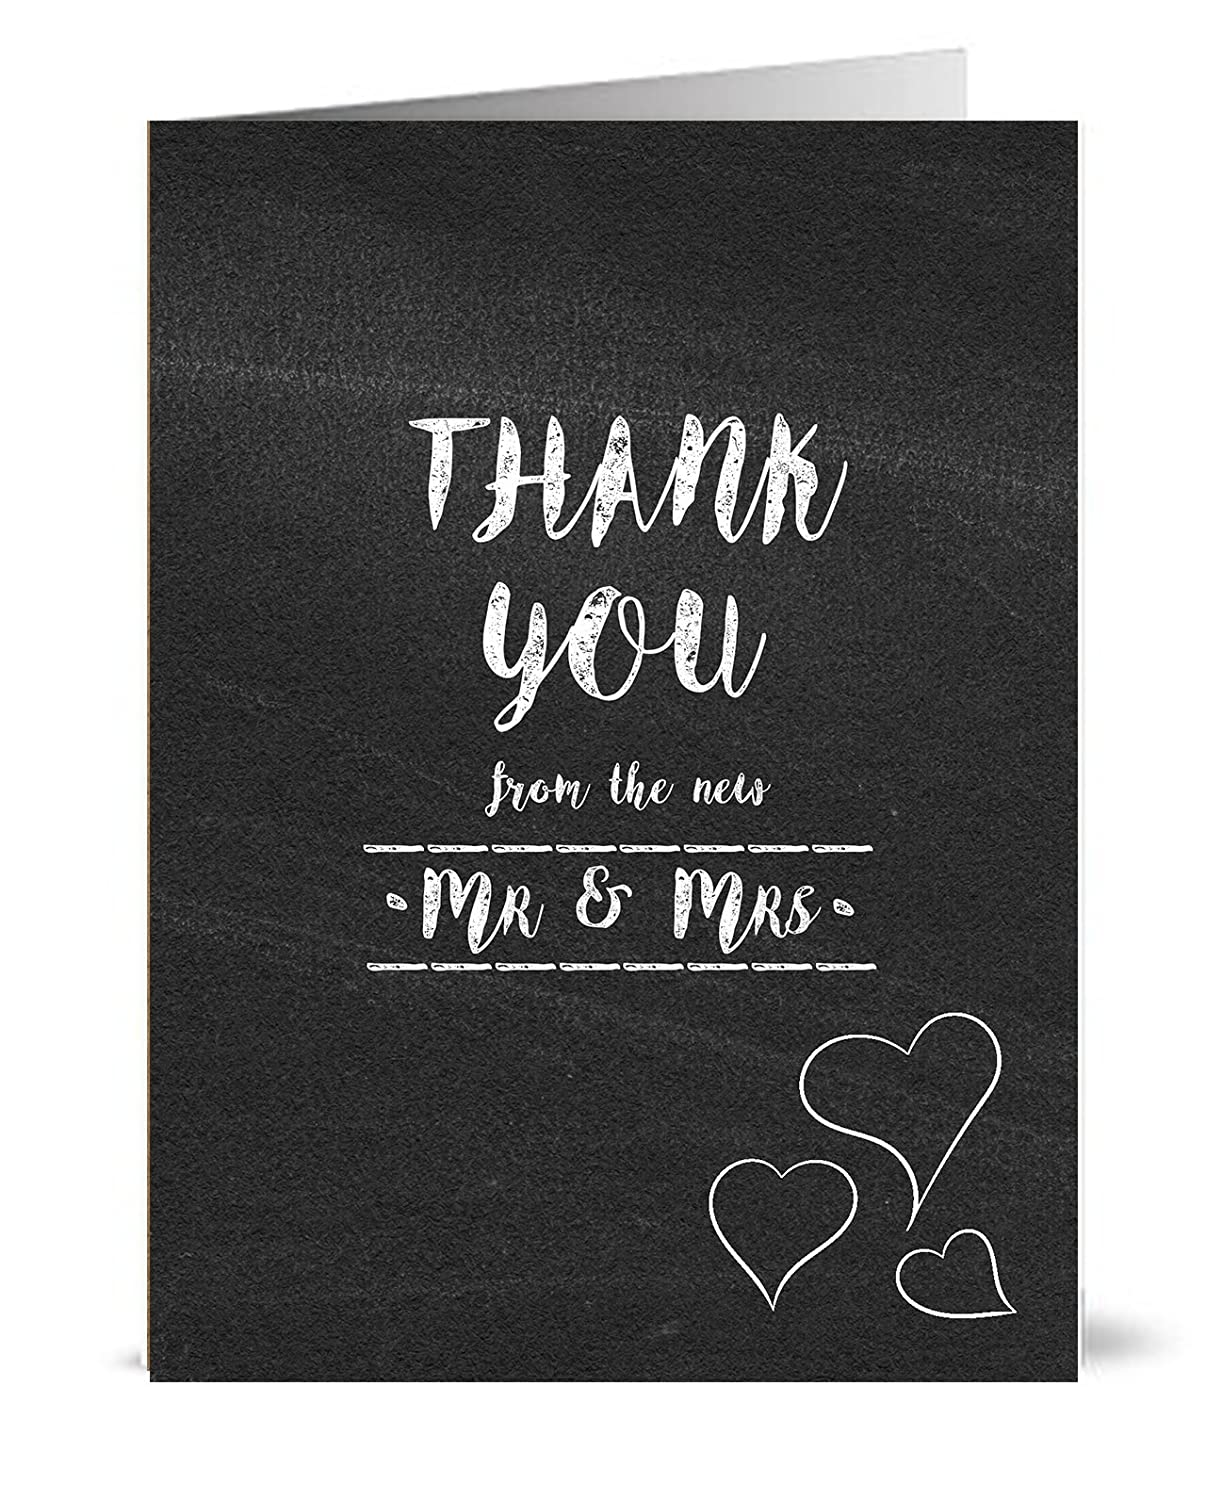 50 Wedding Thank You Cards with Envelopes - Blackboard vintage style greeting cards for thanking people for their attendance the lazy panda card company